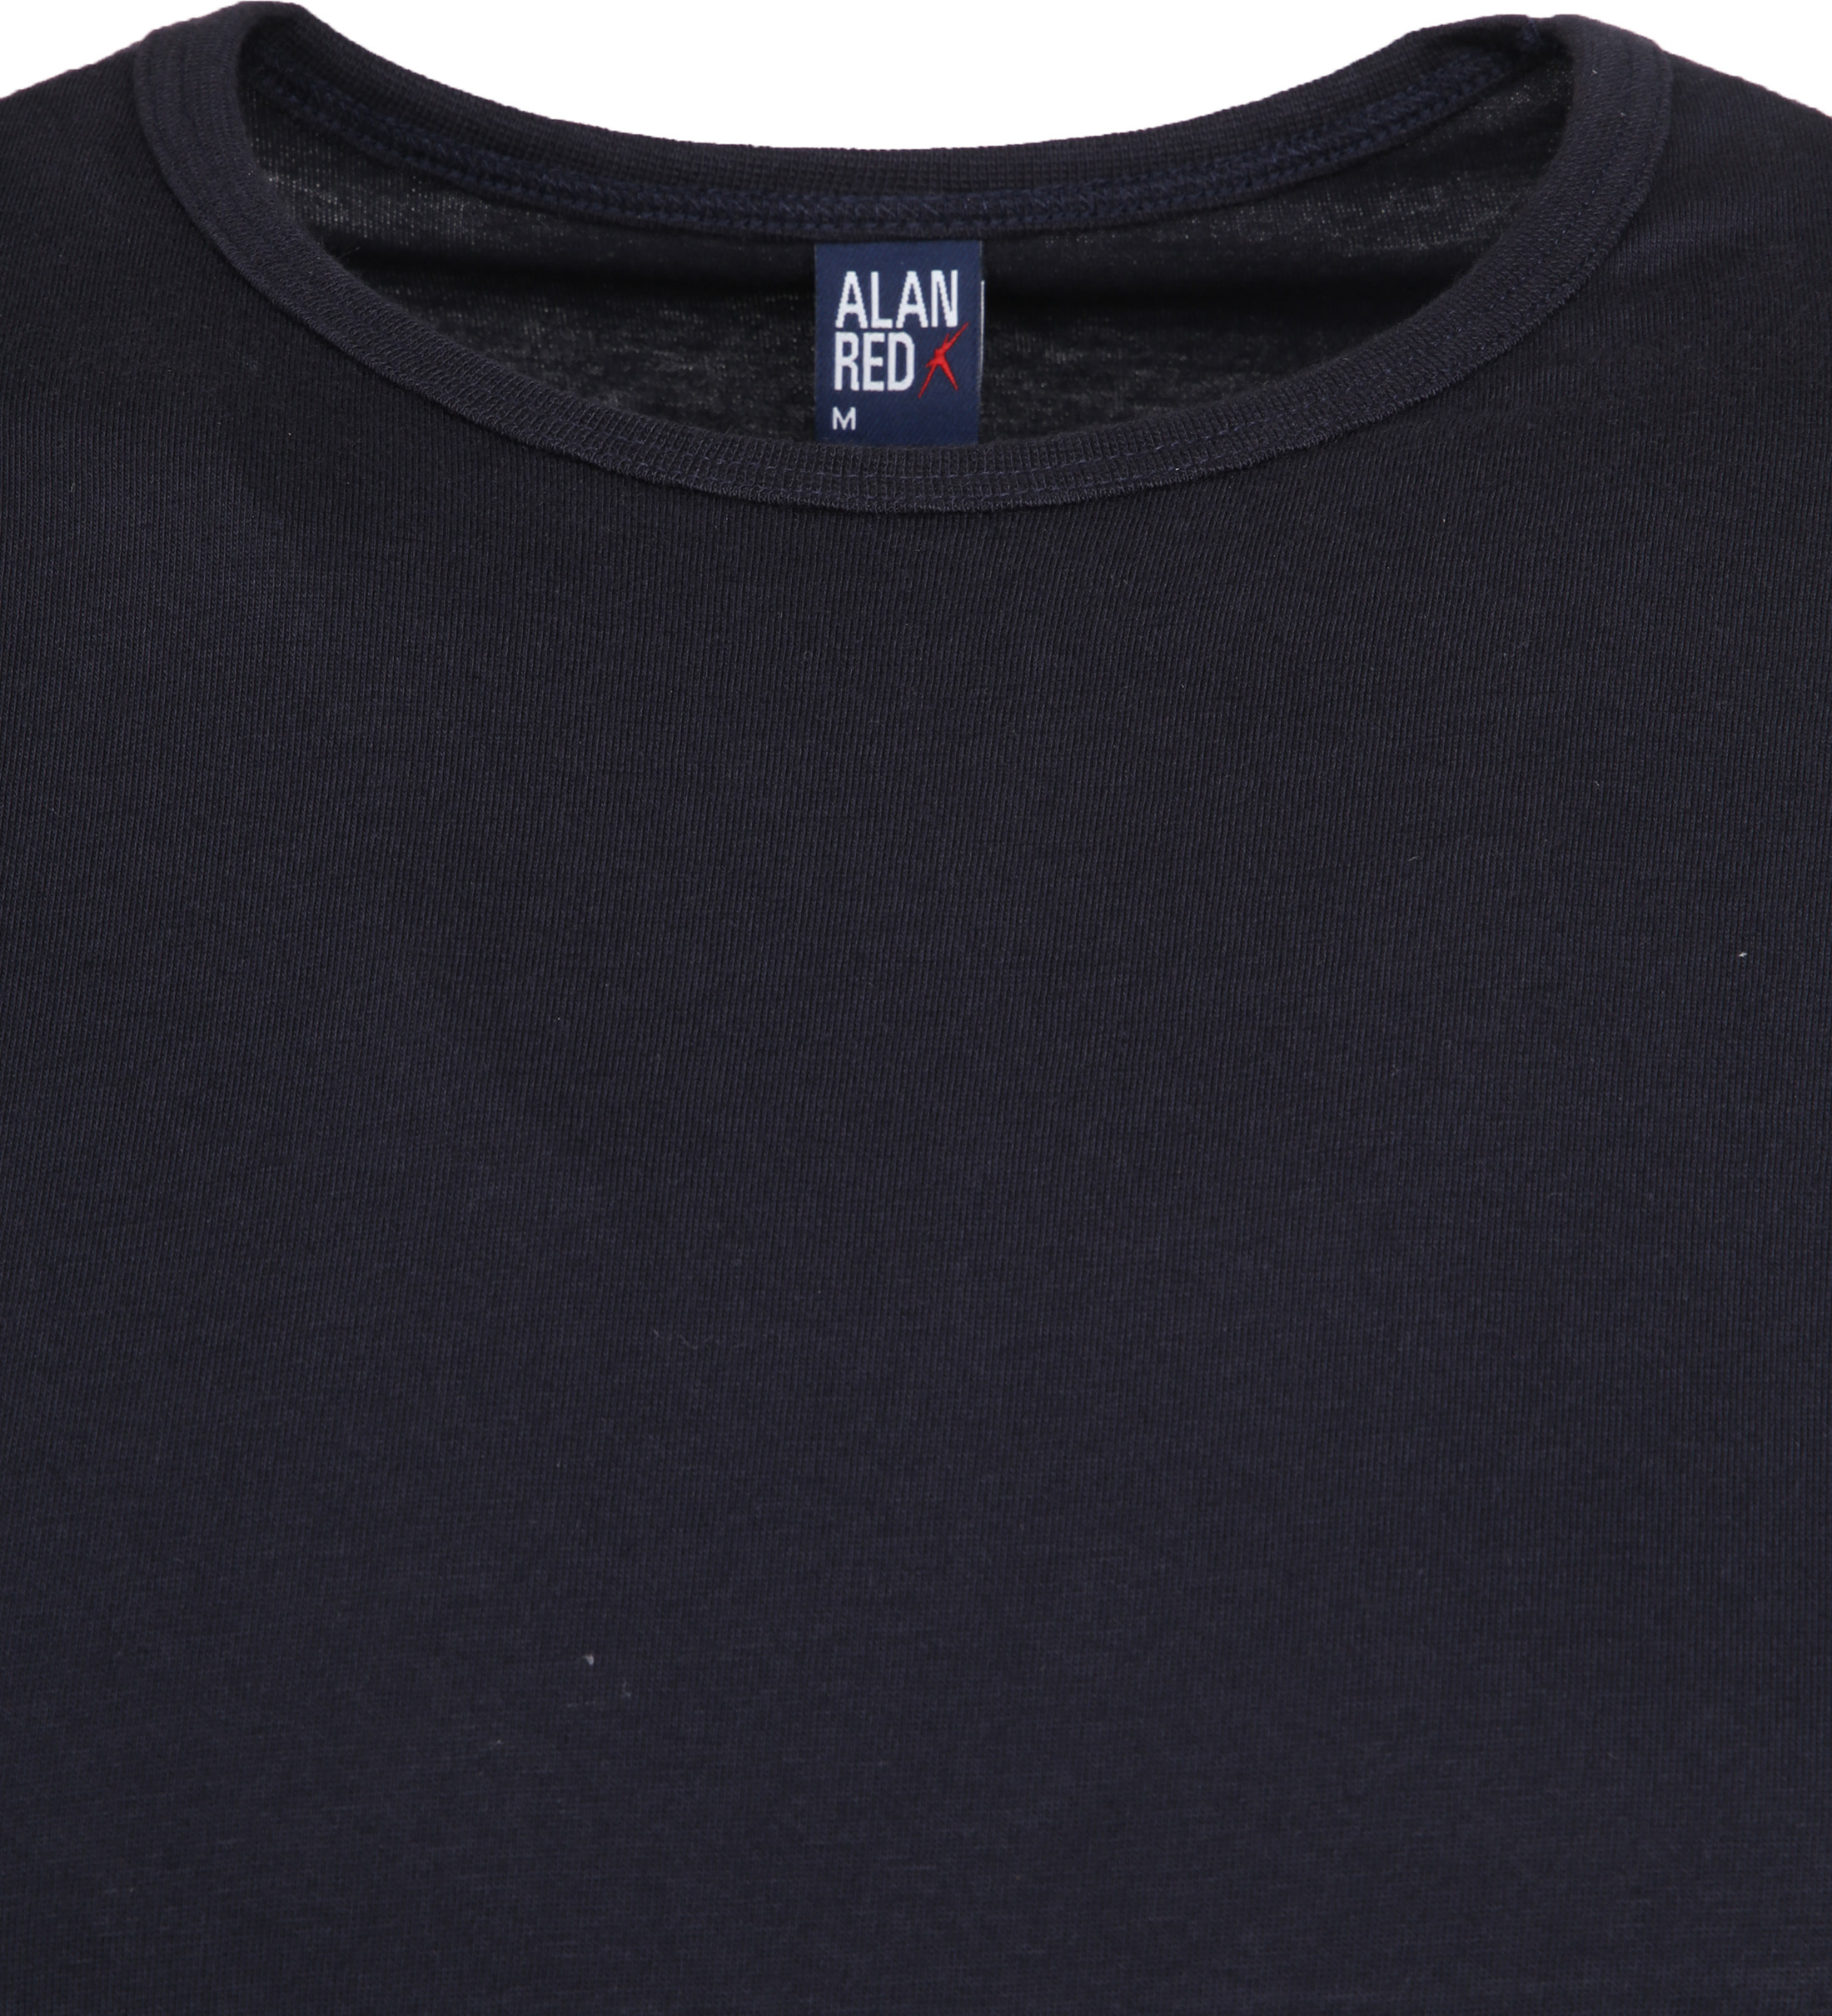 Alan Red Extra Long T-Shirts Derby Navy (1pack) foto 1